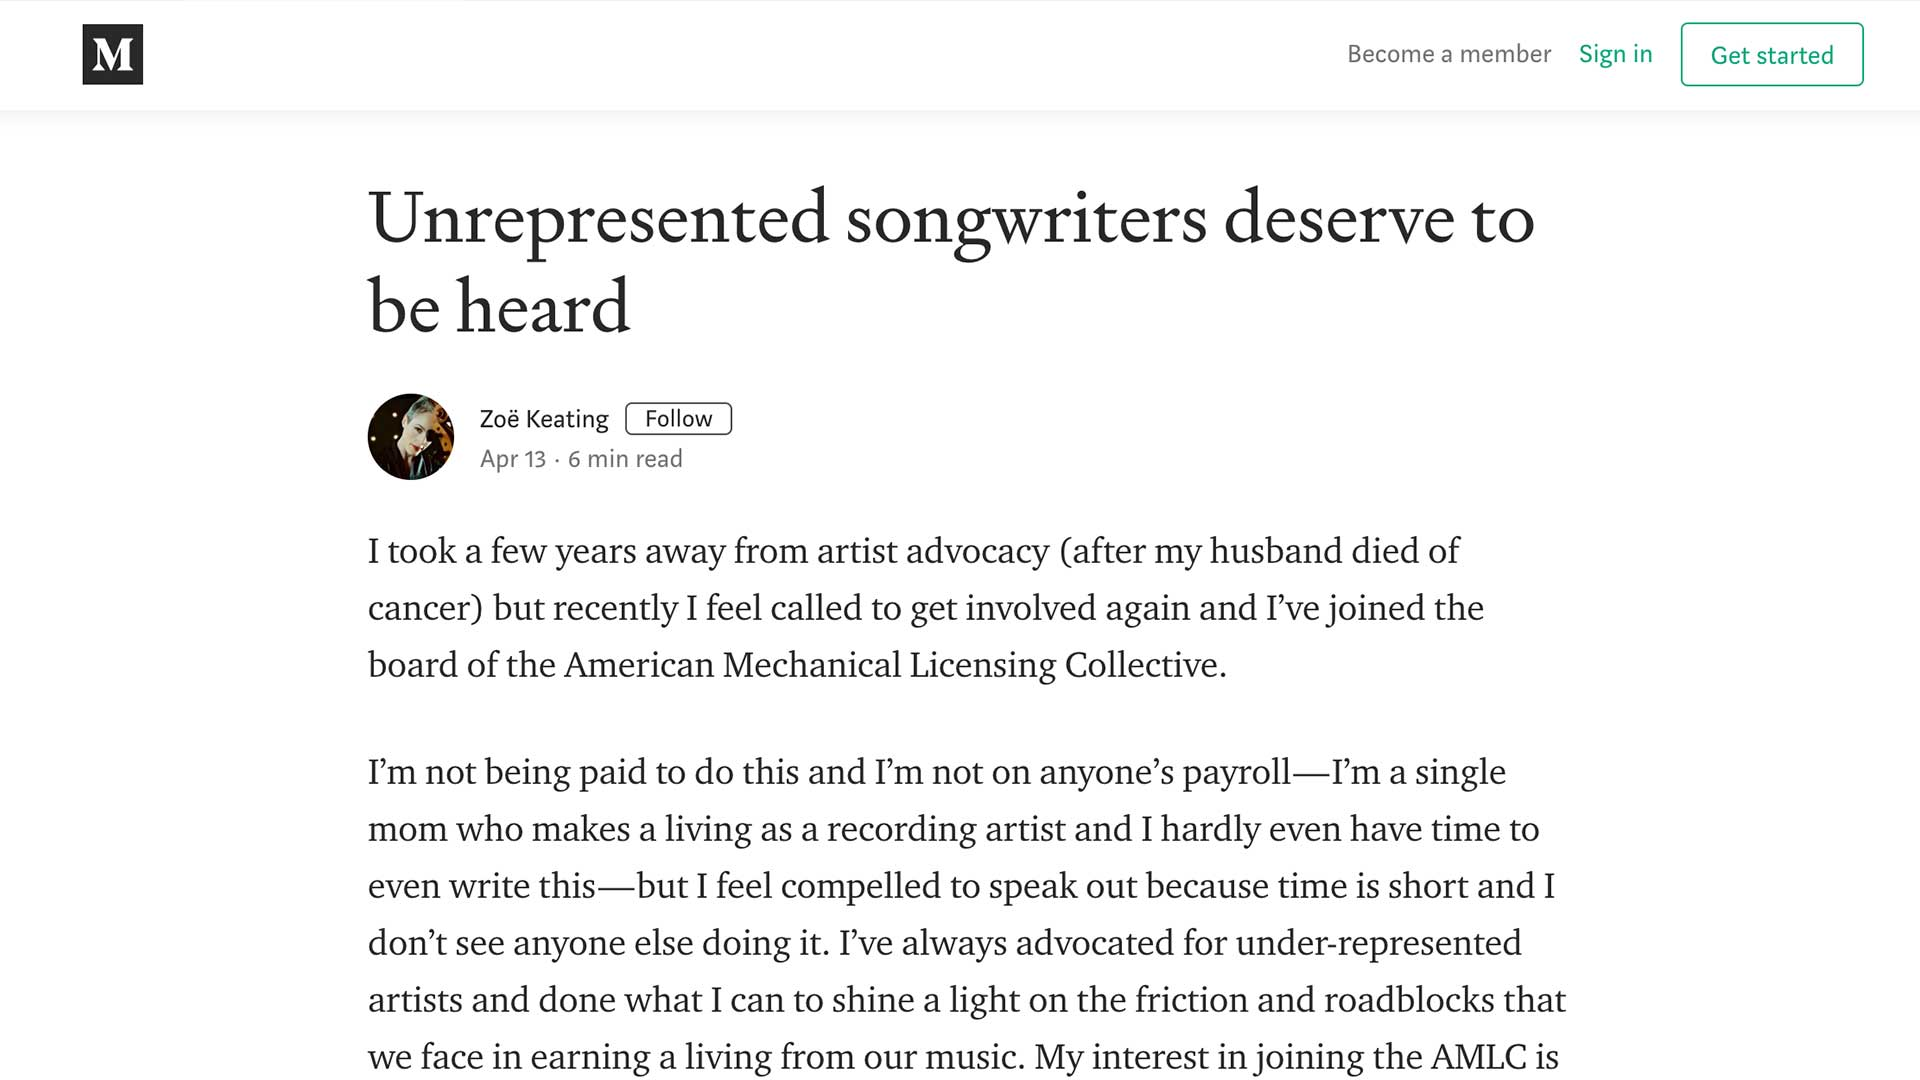 Fairness Rocks News Unrepresented songwriters deserve to be heard